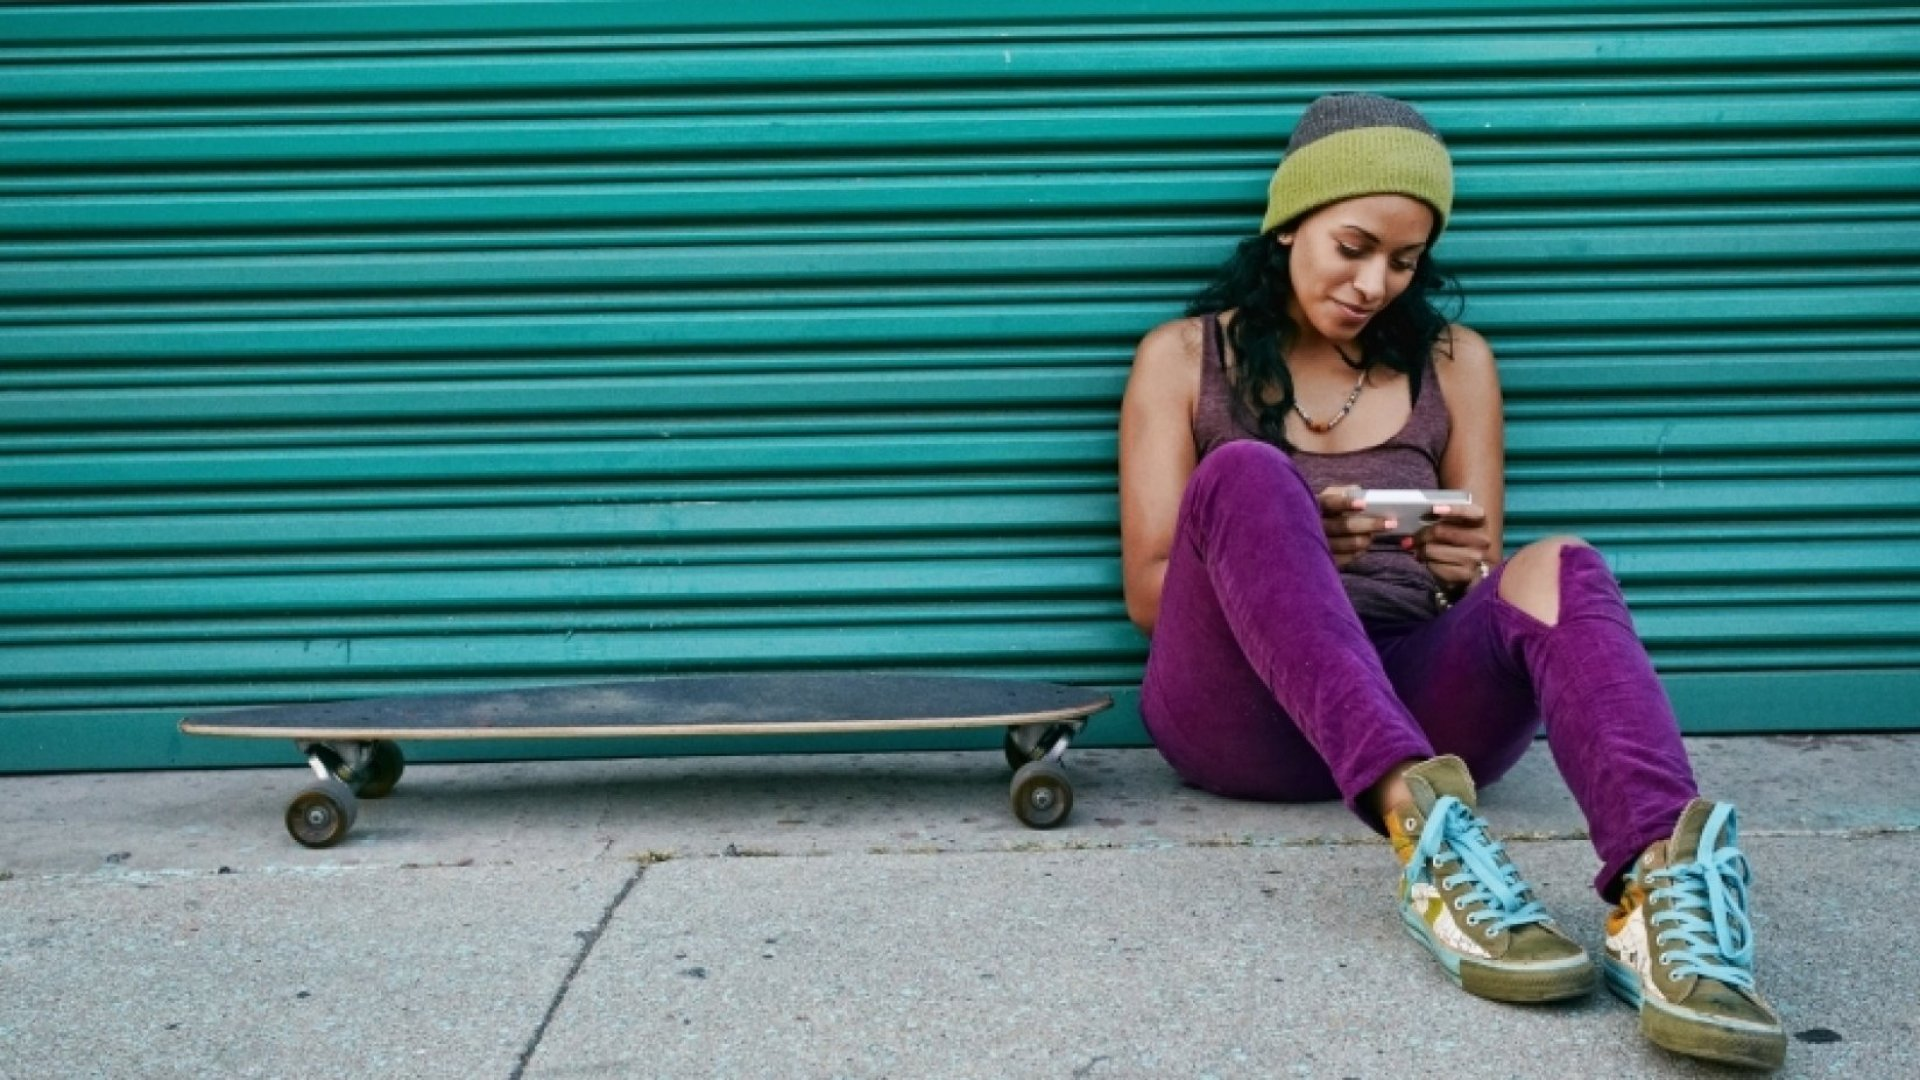 Consumers Look at Their Phones 150 Times a Day: Here's What This CMO Is Doing About It